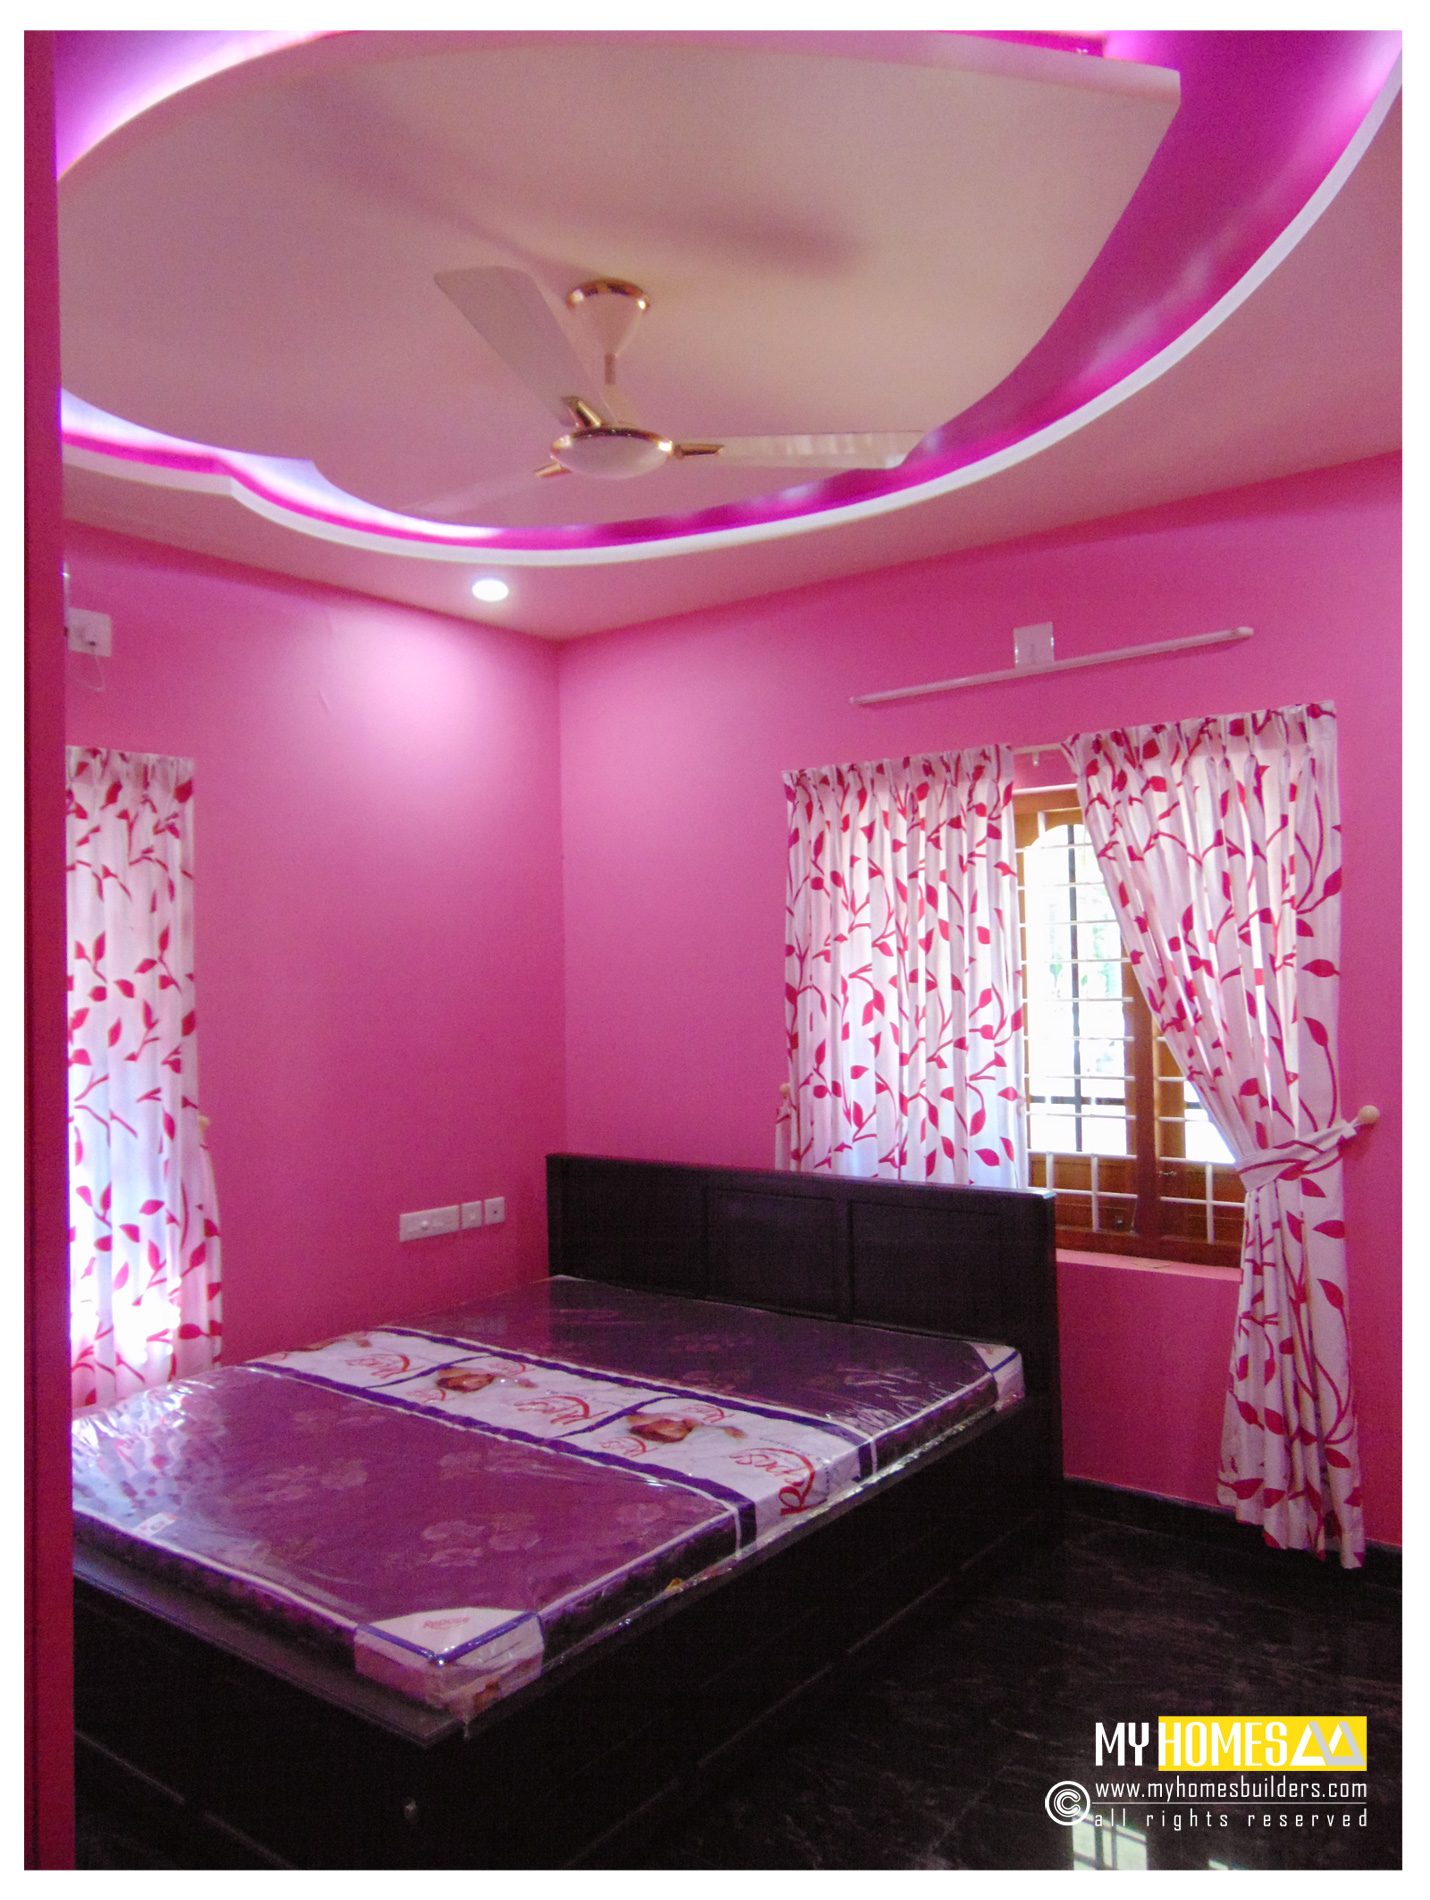 Simple style kerala bedroom designs ideas for home interior for Bedroom designs latest